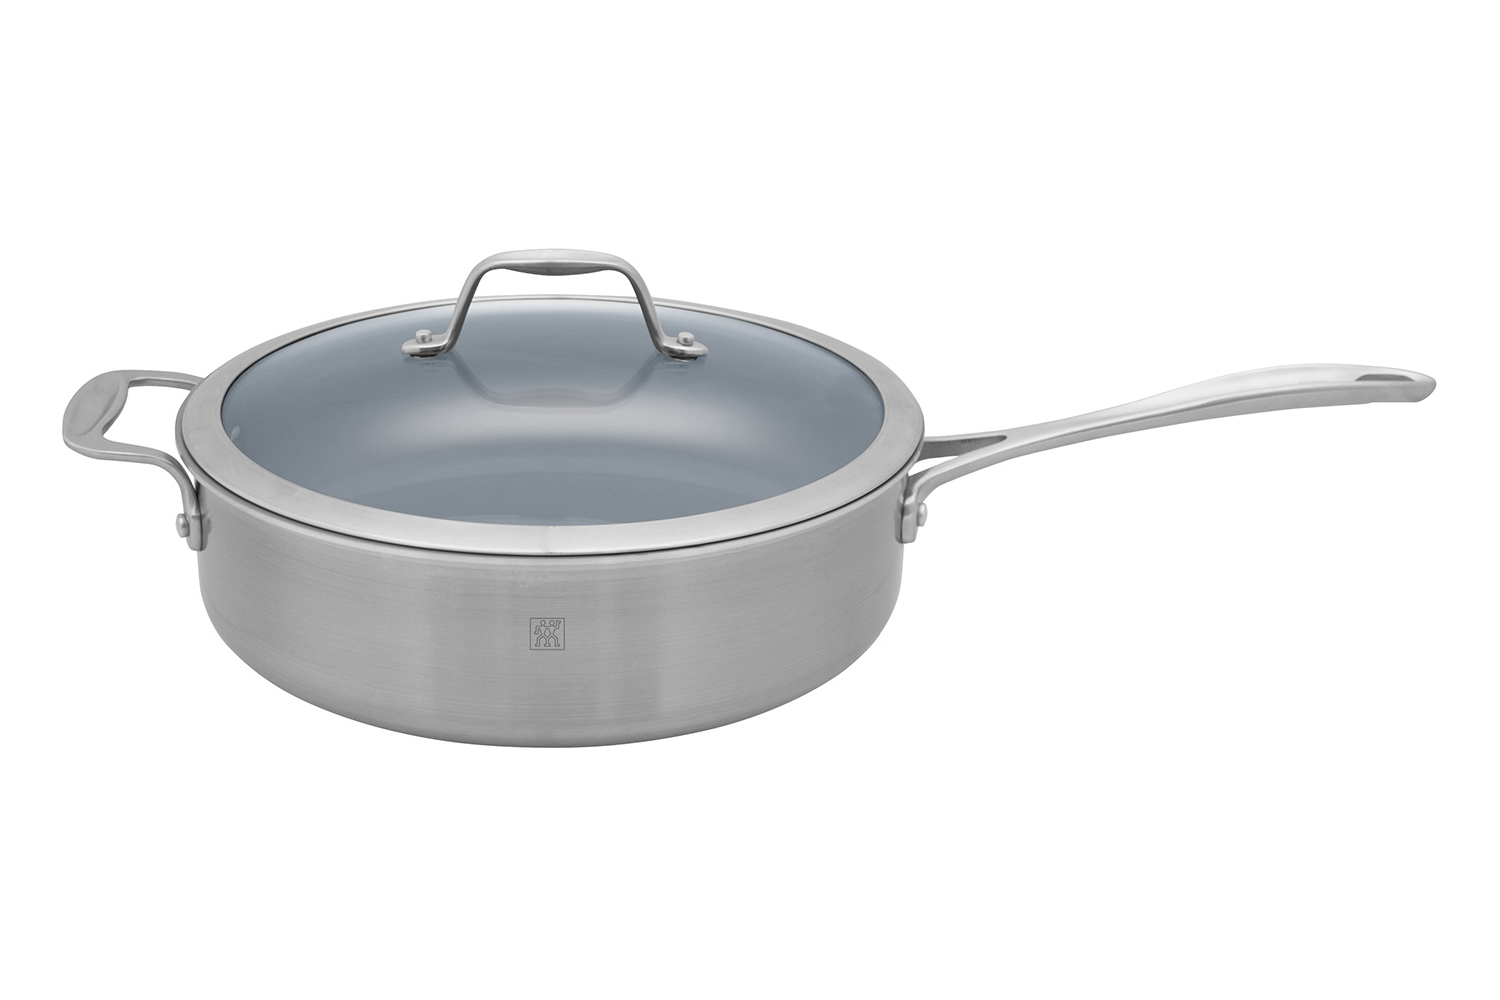 Zwilling J.A. Henckels Spirit 5 qt. Saute Pan w/Lid - Ceramic Nonstick Coating